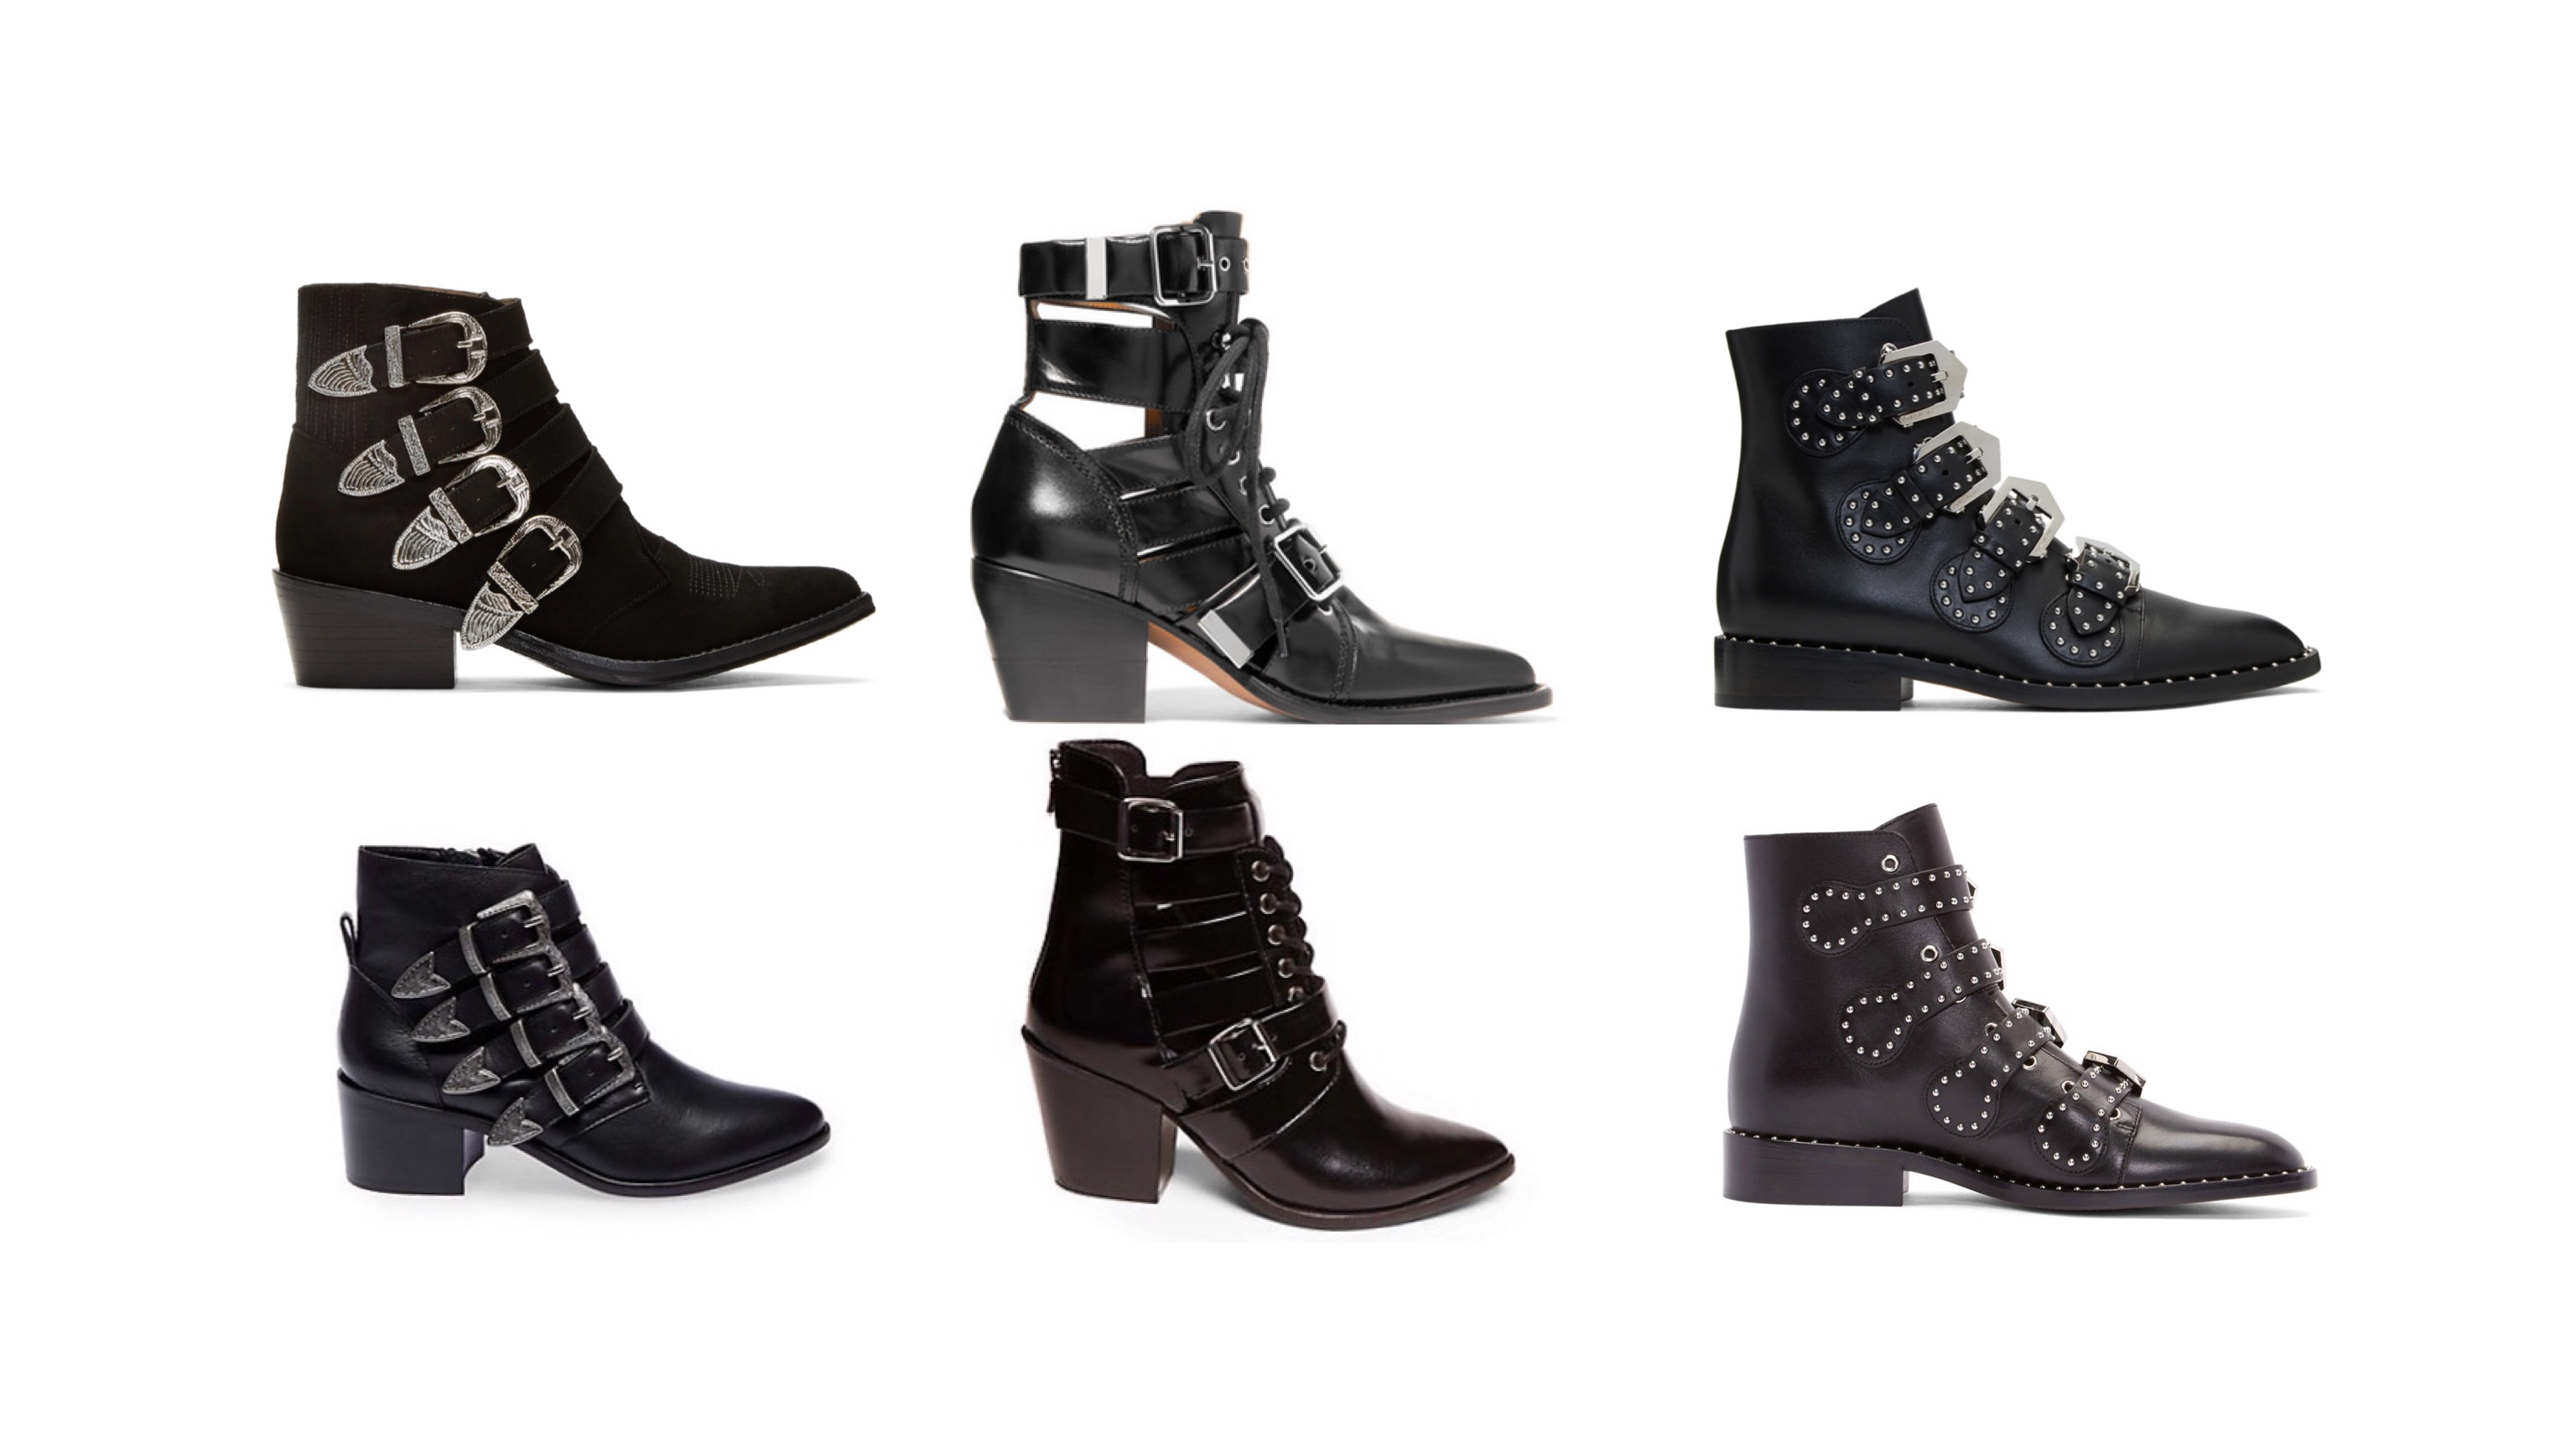 4468326de5ca Ankle boots are a must-have and you can score beautiful dupes of the latest